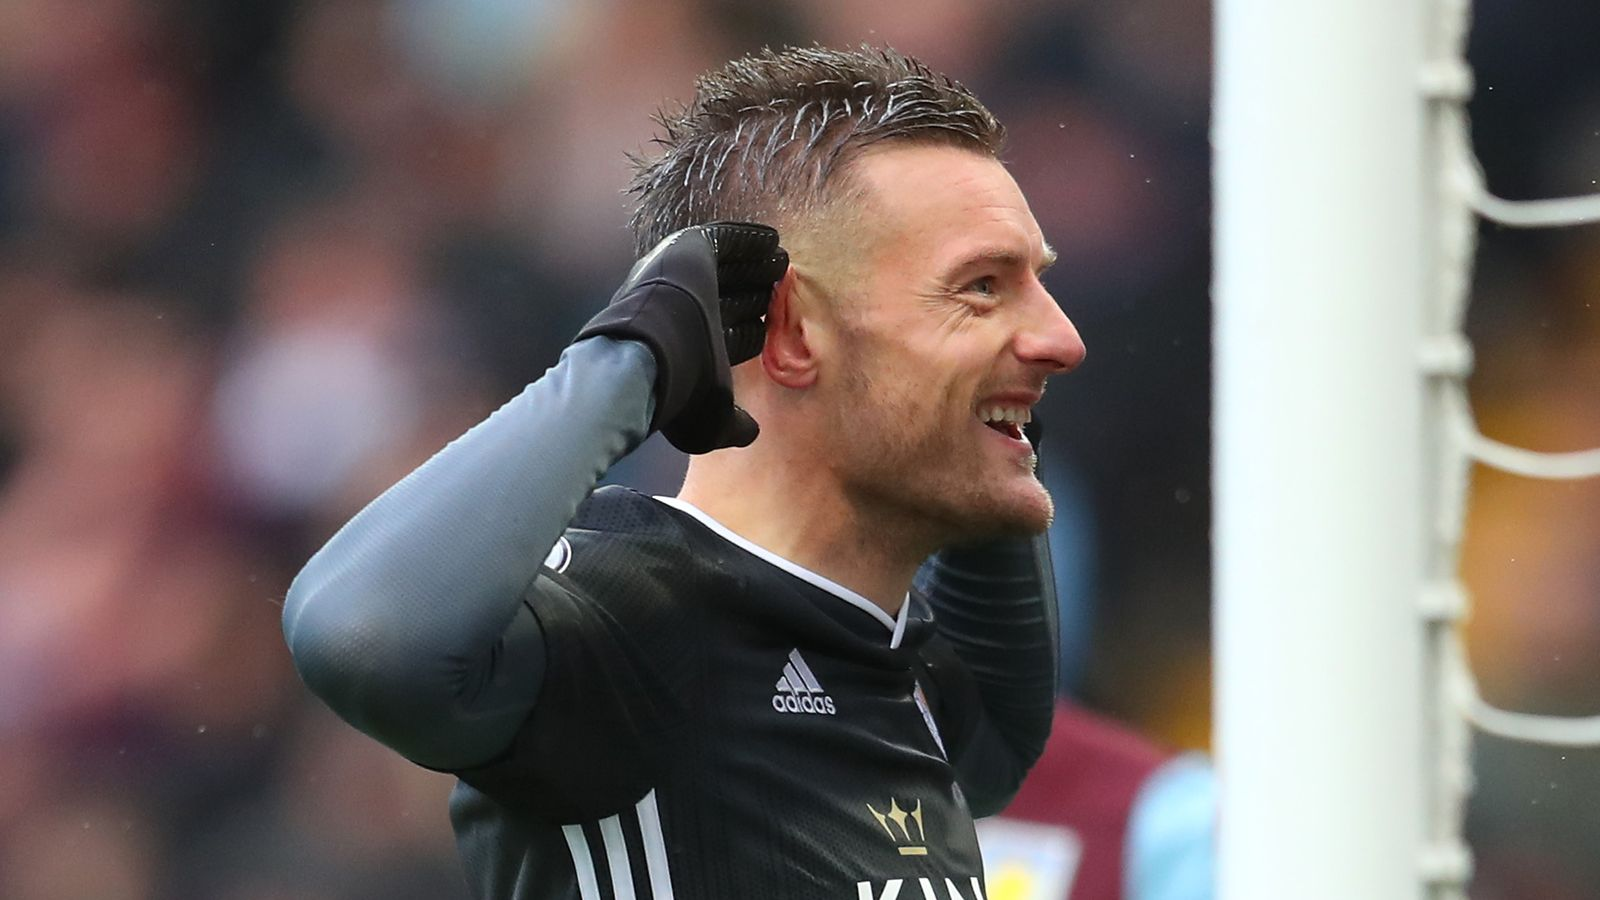 Aston Villa 1-4 Leicester: Jamie Vardy scores two as Foxes win again